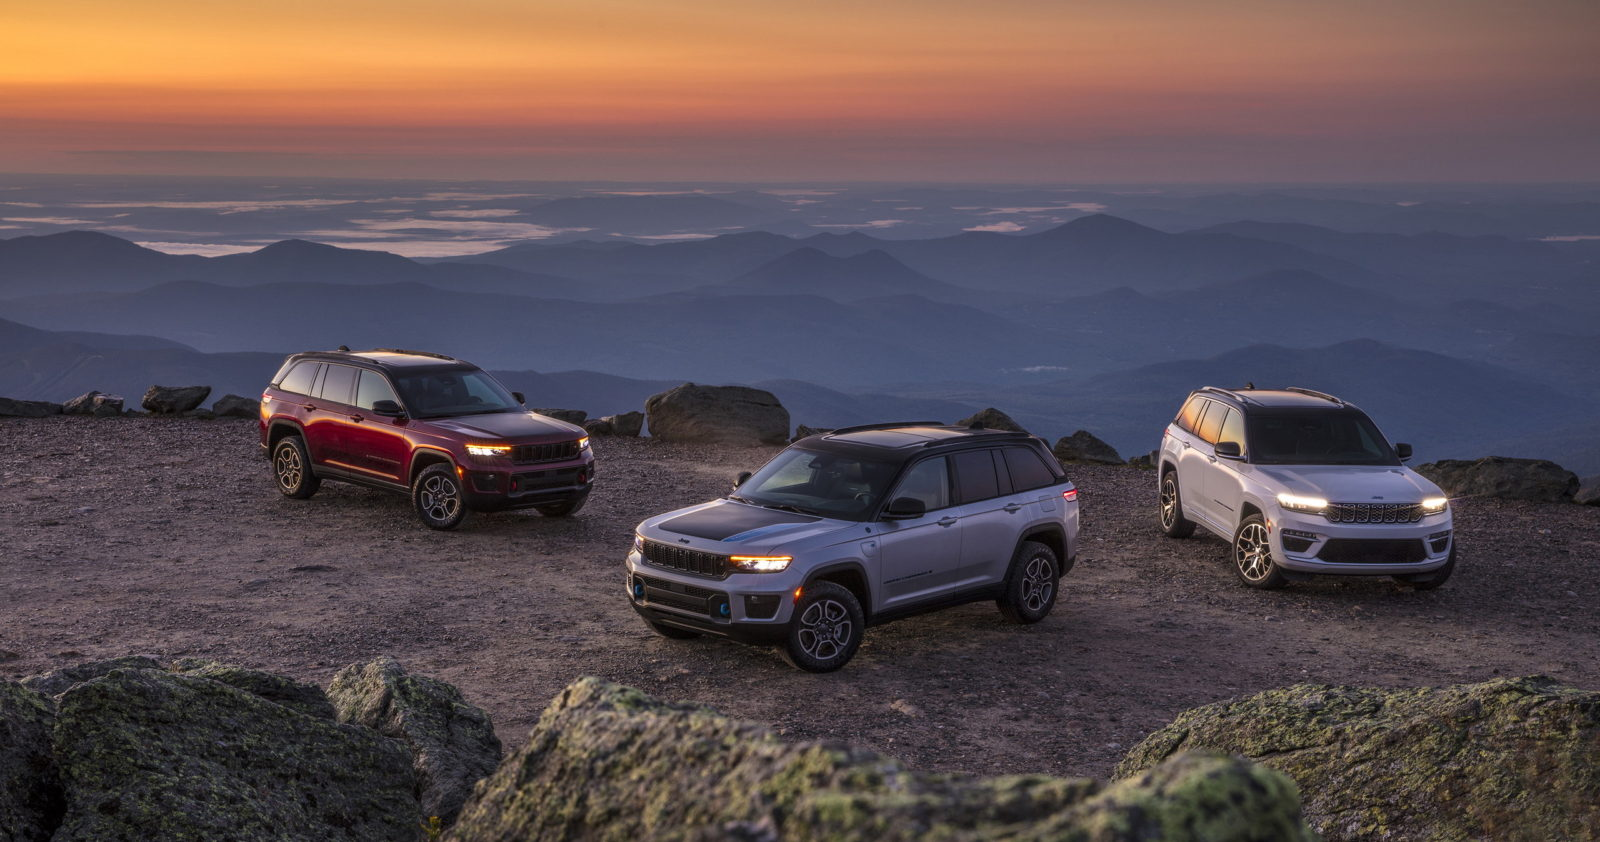 new-2022-jeep-grand-cherokee-is-here,-adds-mild-hybrid-options